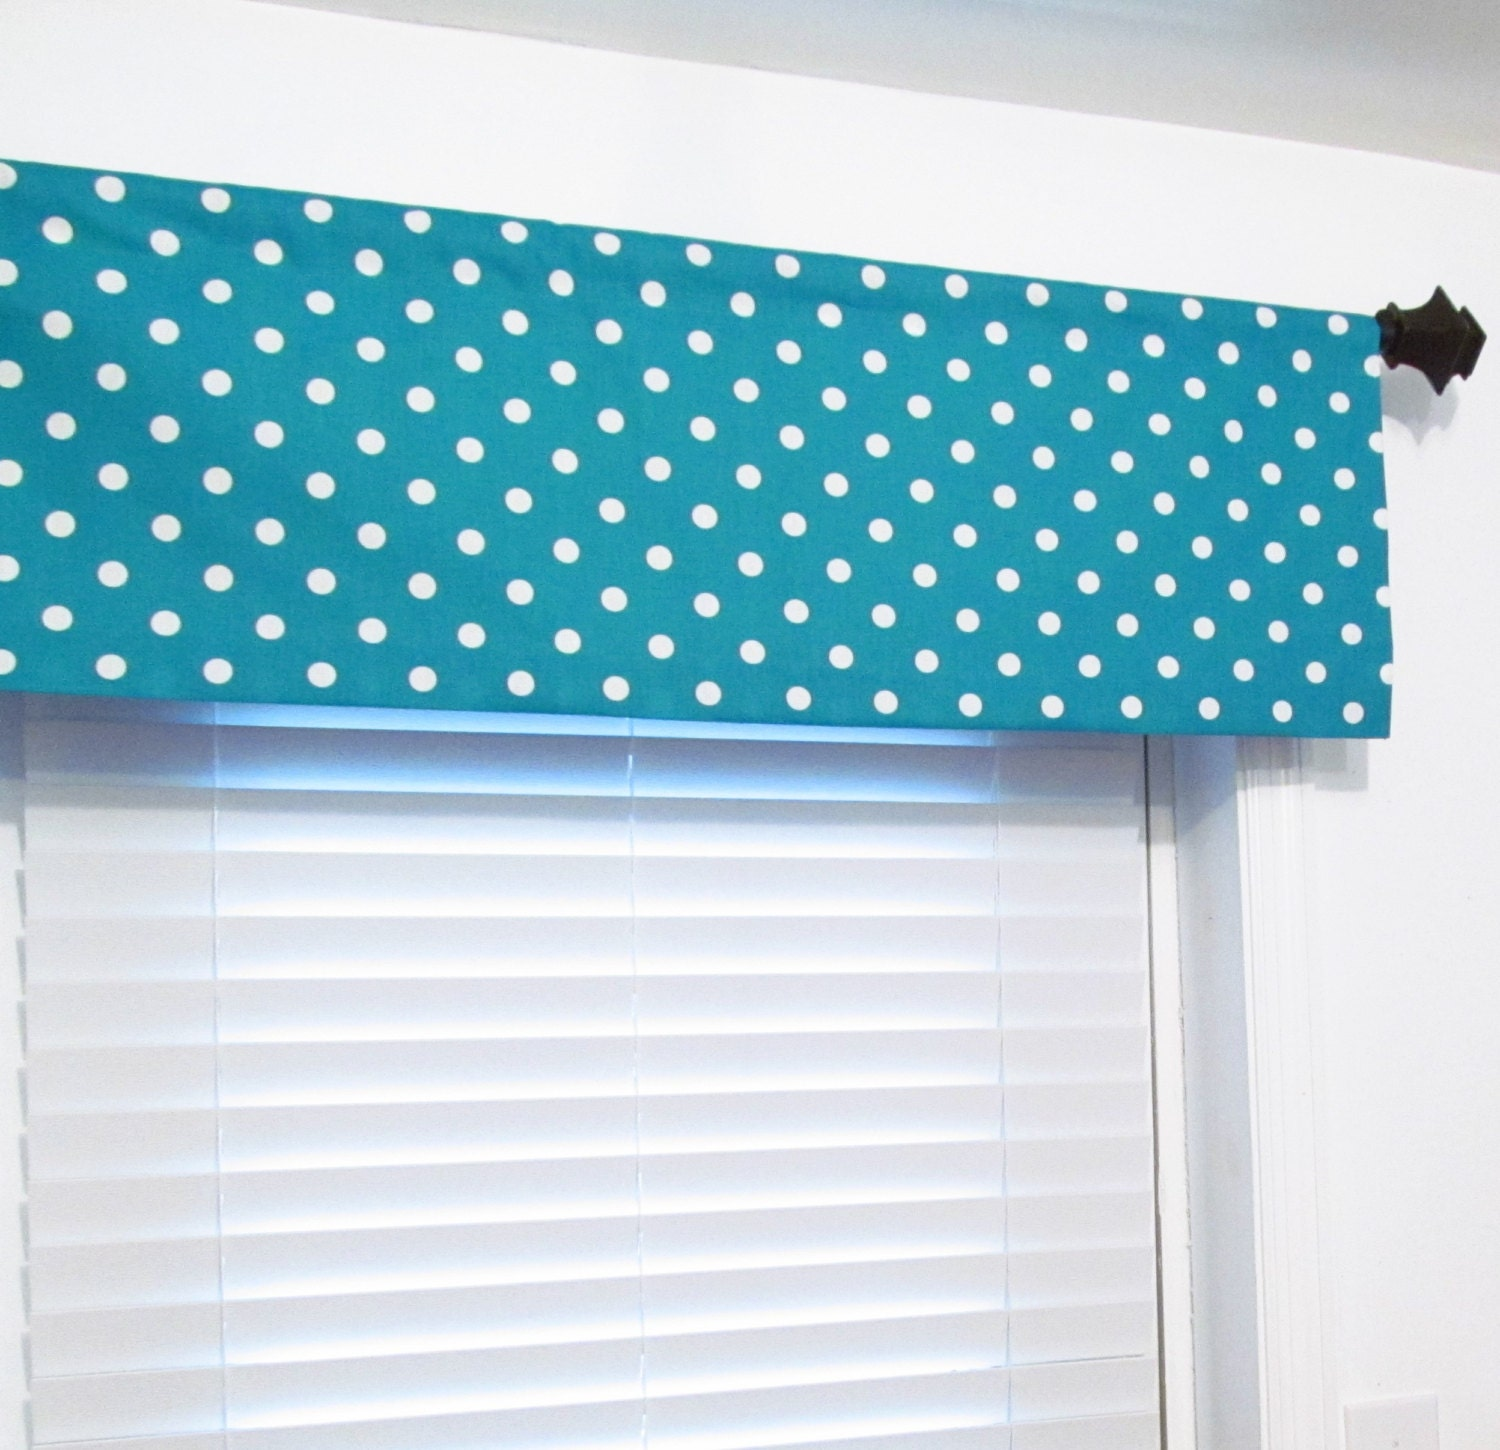 True Turquoise Polka Dots Curtain Valance Handmade By Oldstation